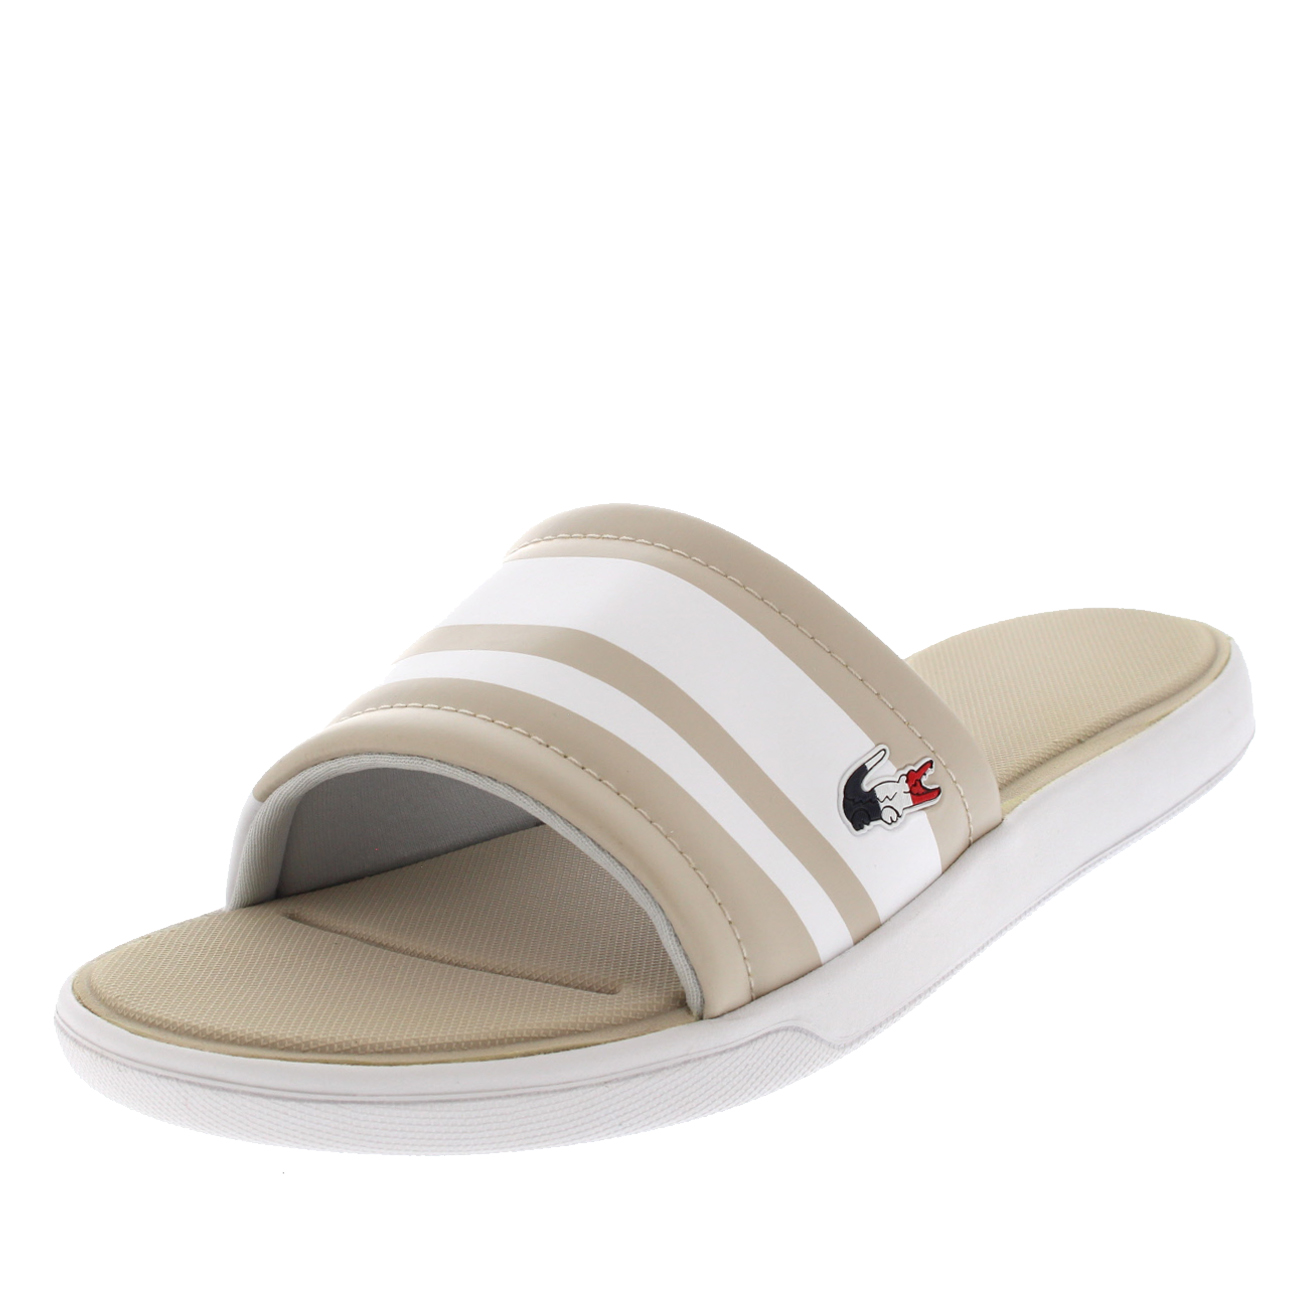 39b745d2e Ladies lacoste slide sports lightweight sliders sandals jpg 1301x1301 Lacoste  ladies sandals